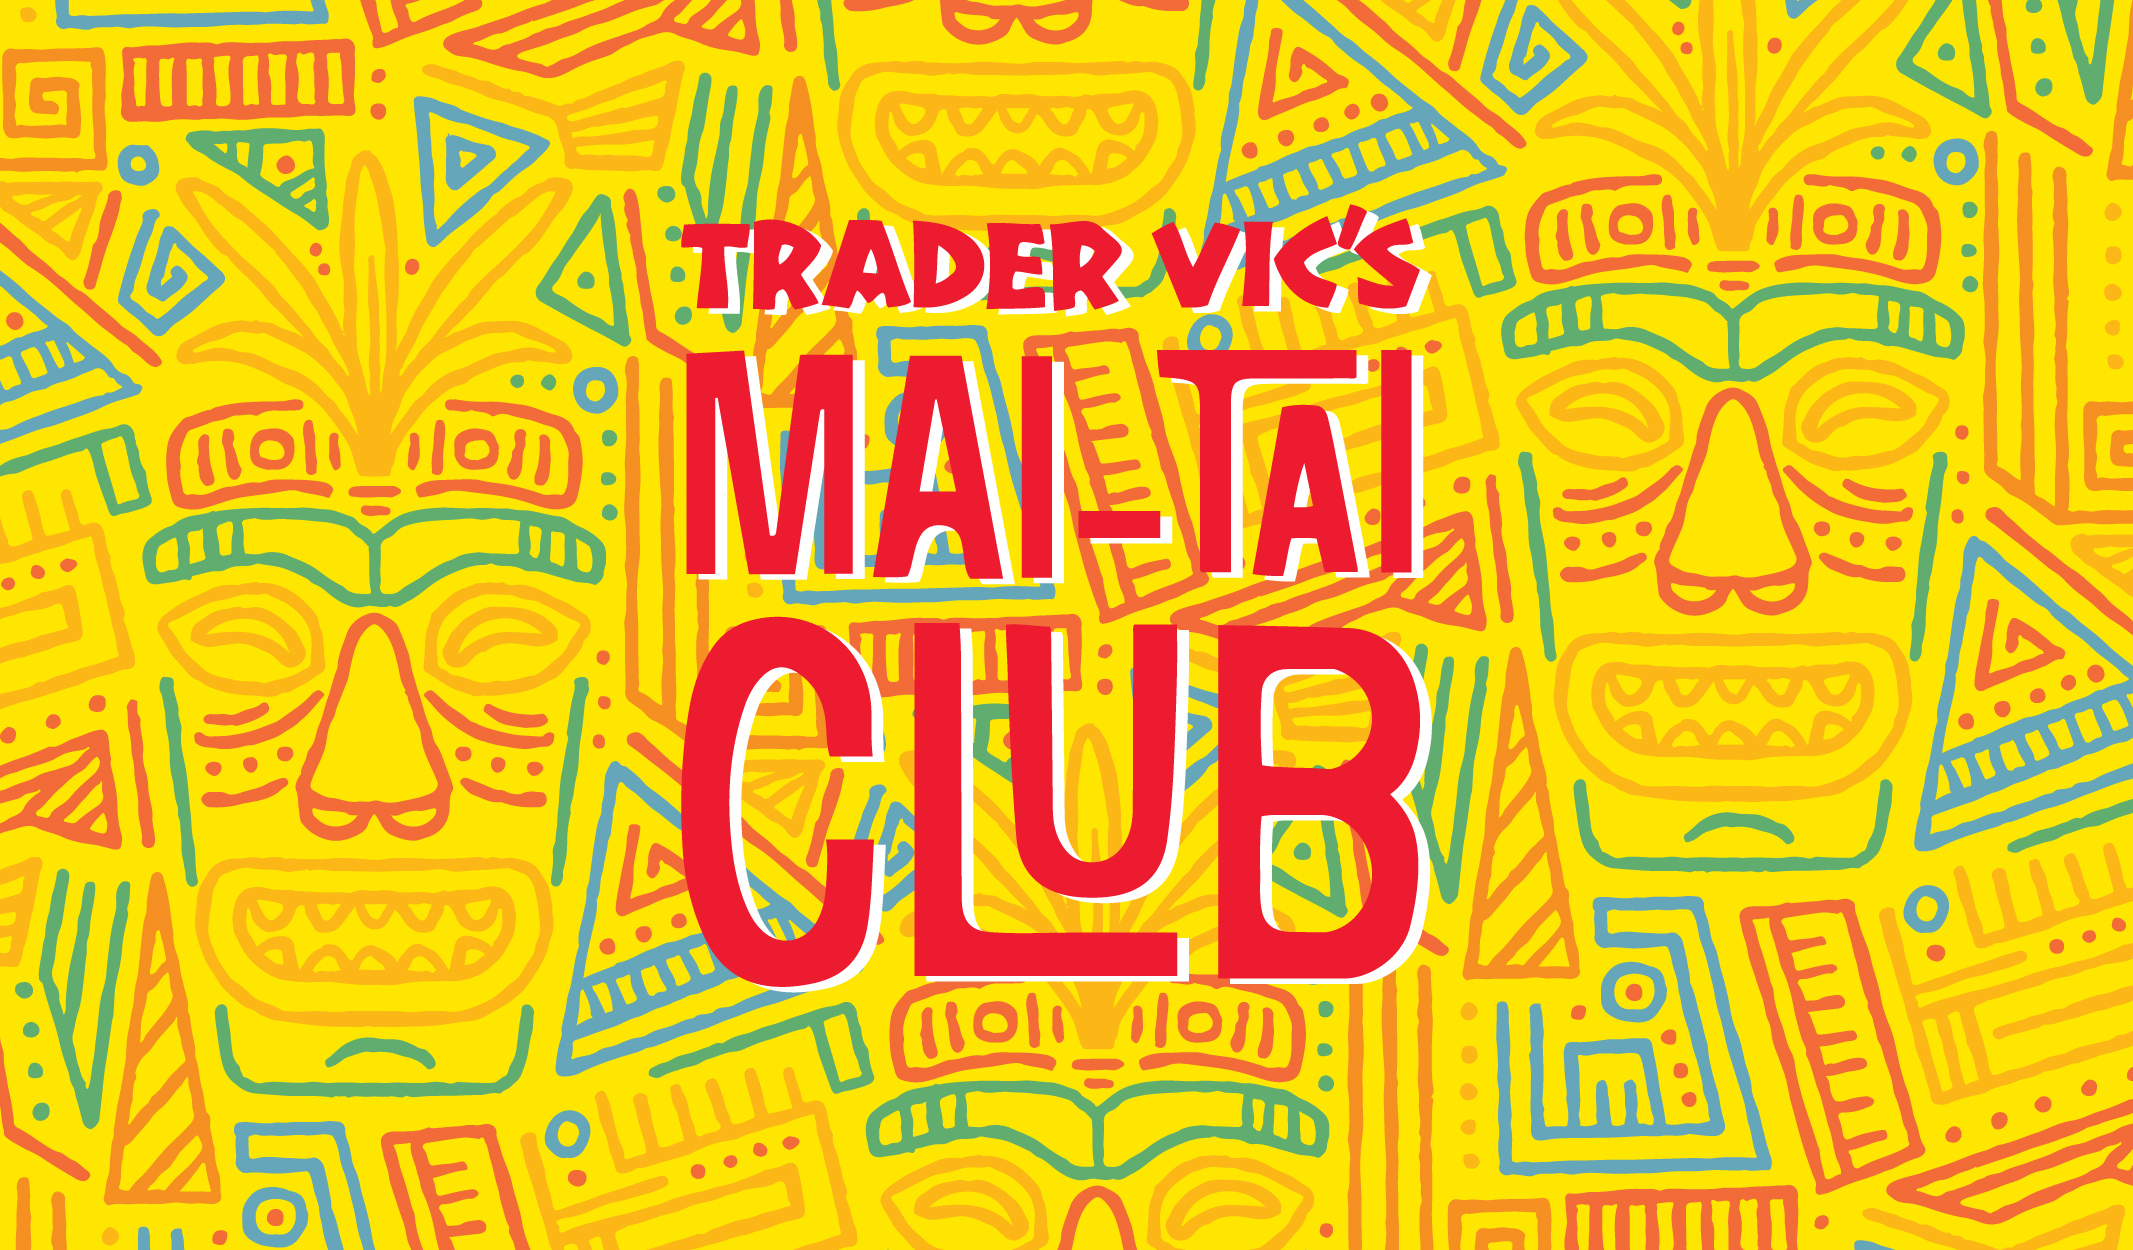 Join the mai tai club image